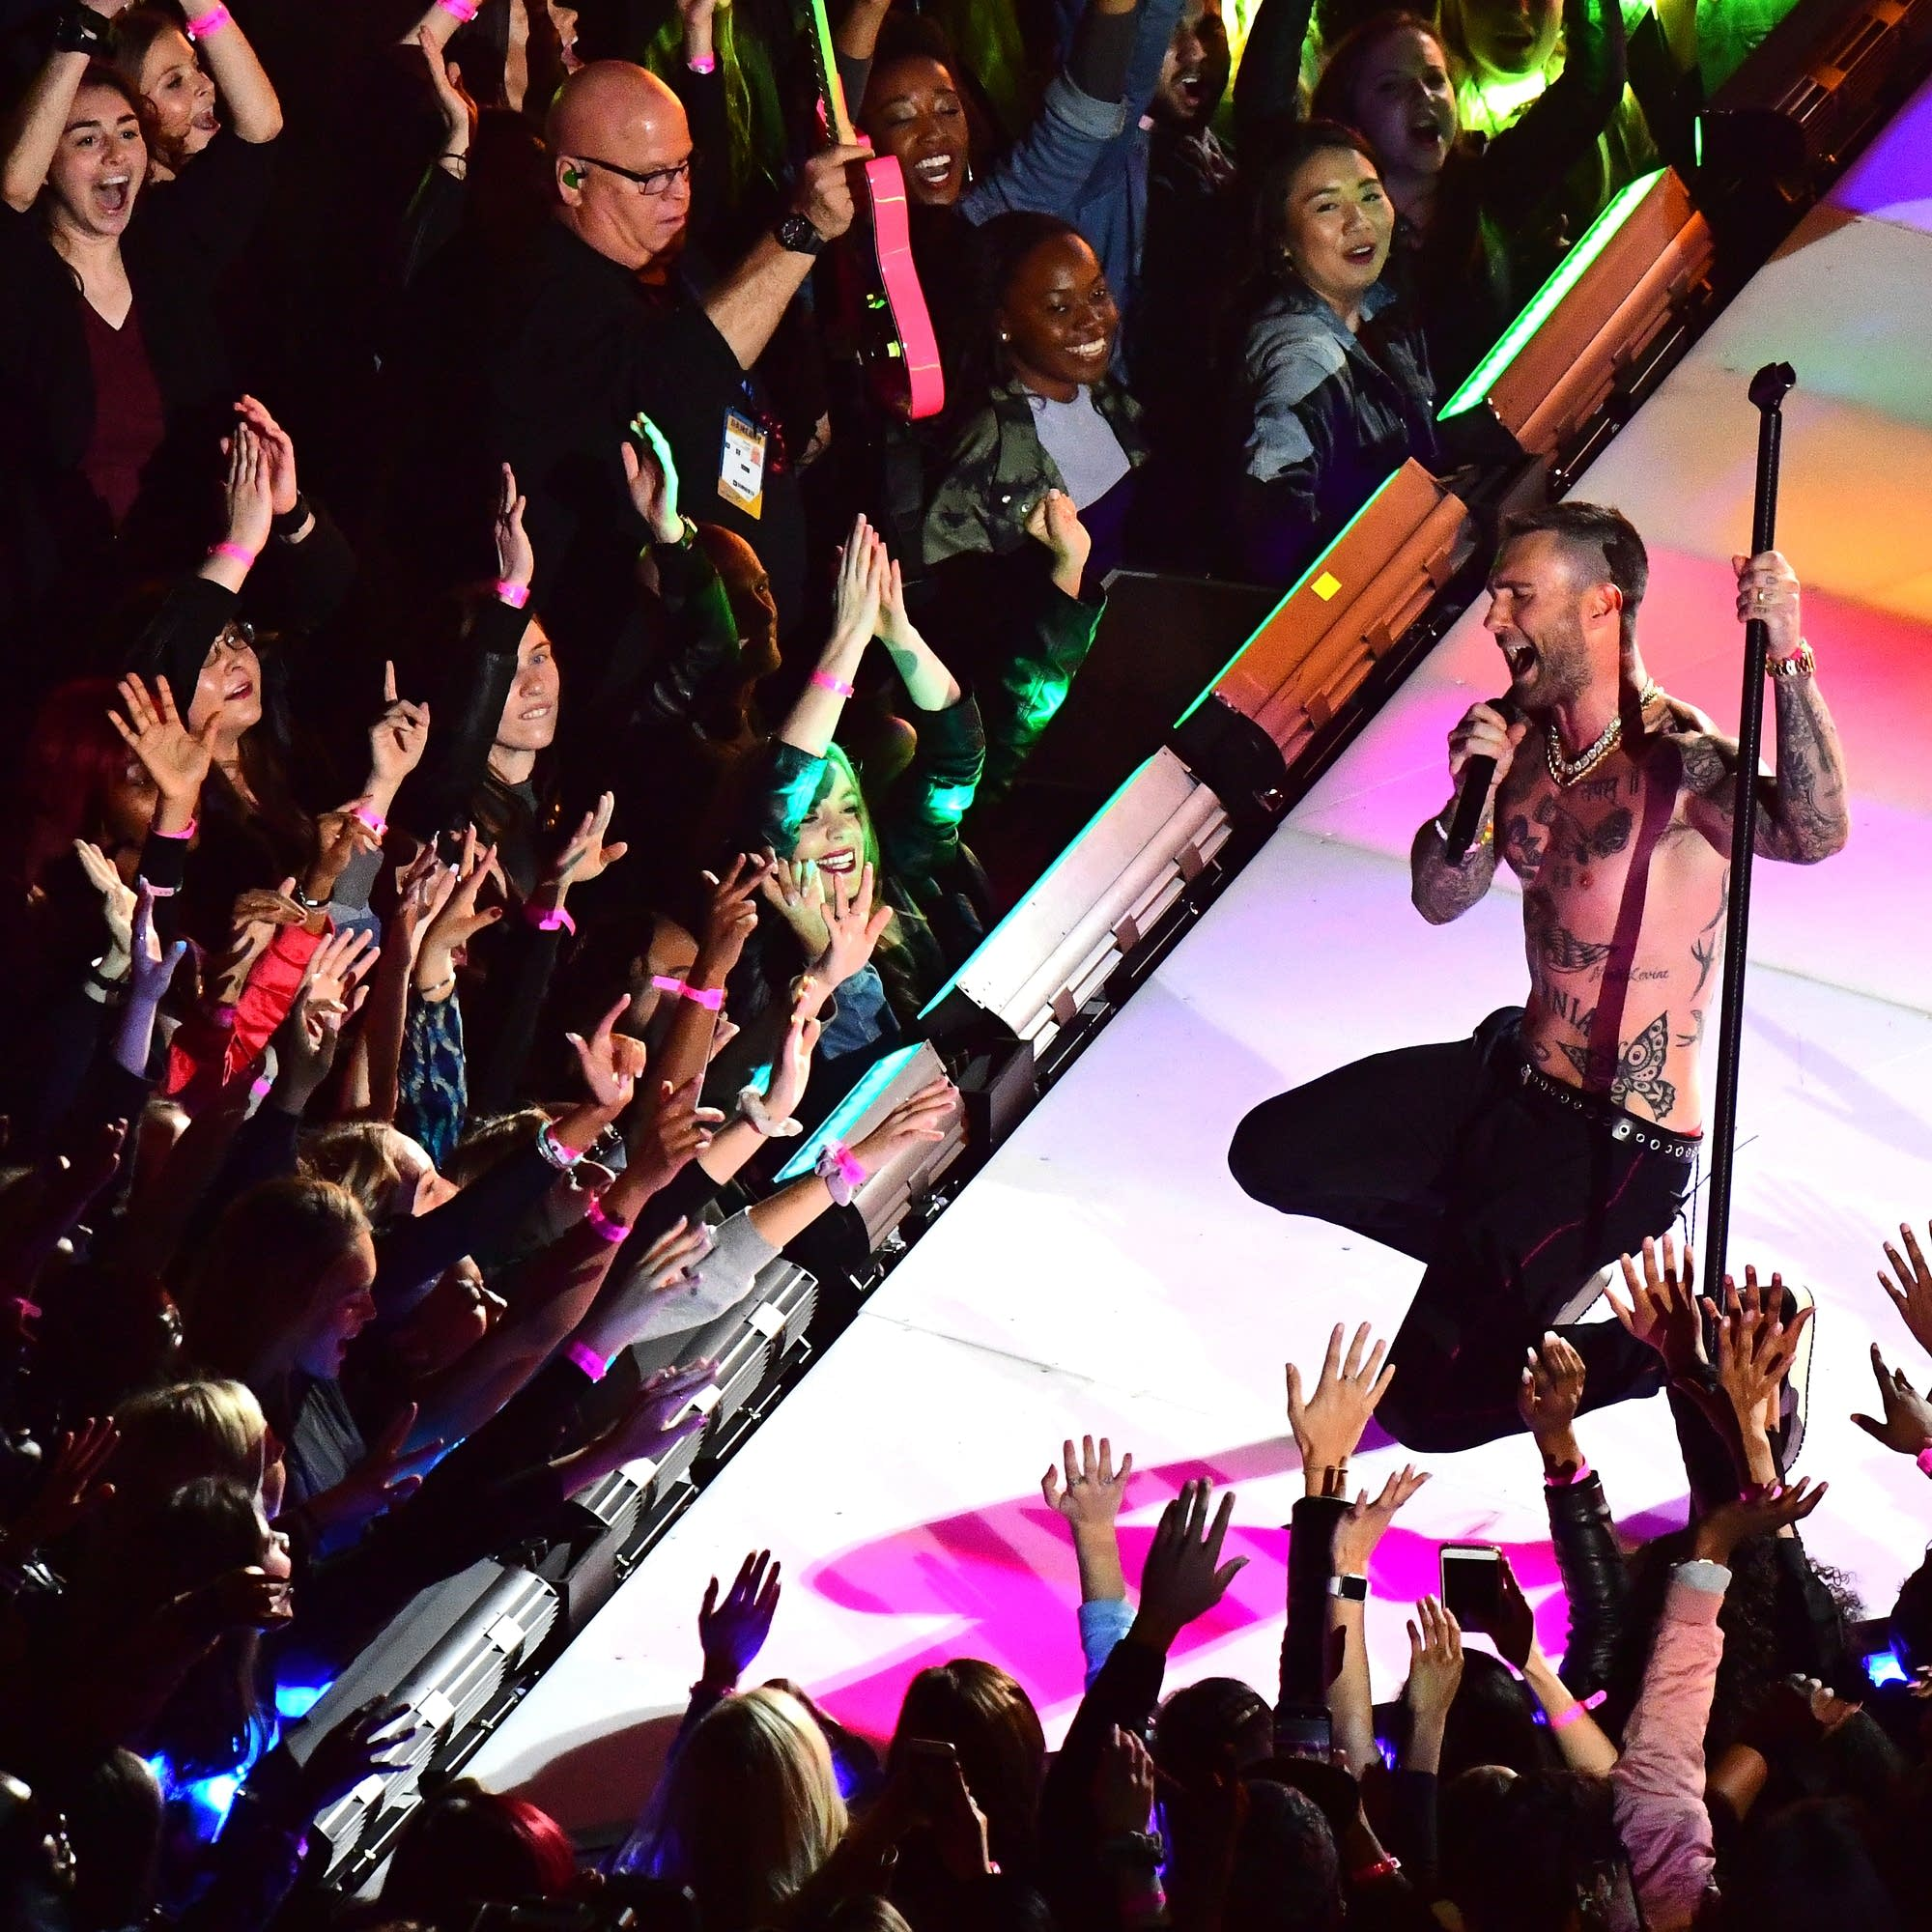 Adam Levine of Maroon 5 performs at the Super Bowl LIII halftime show.